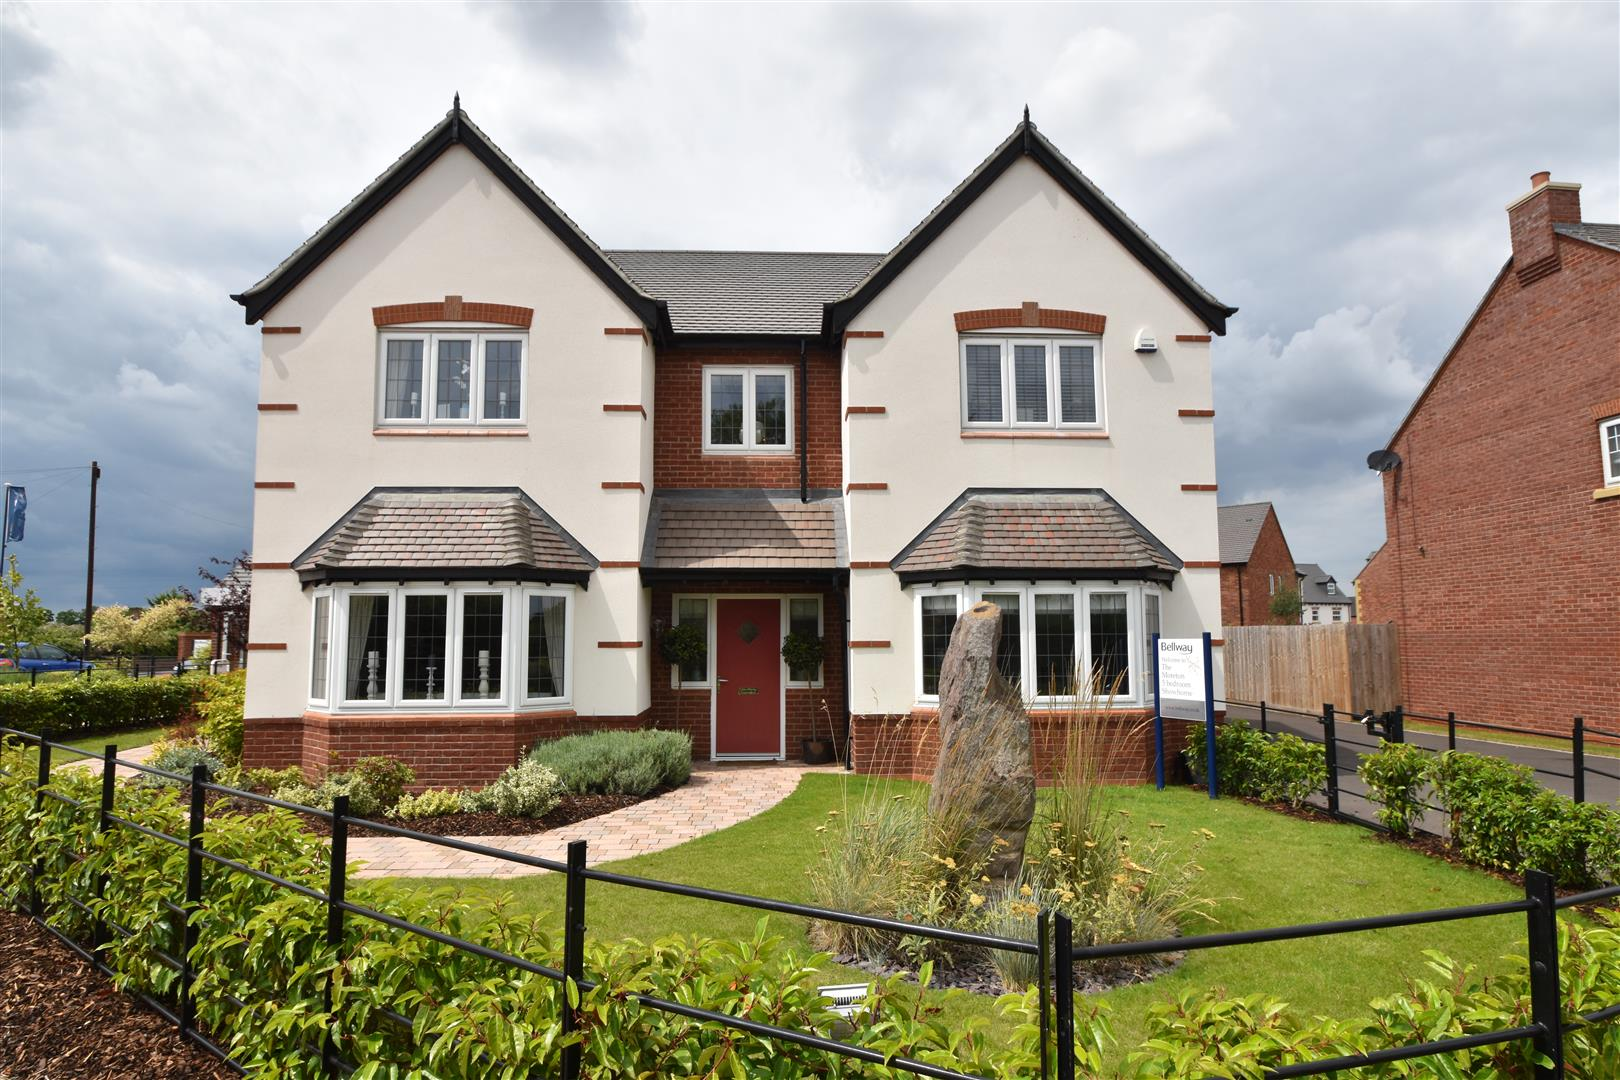 5 Bedrooms House for sale in Claines, Worcester